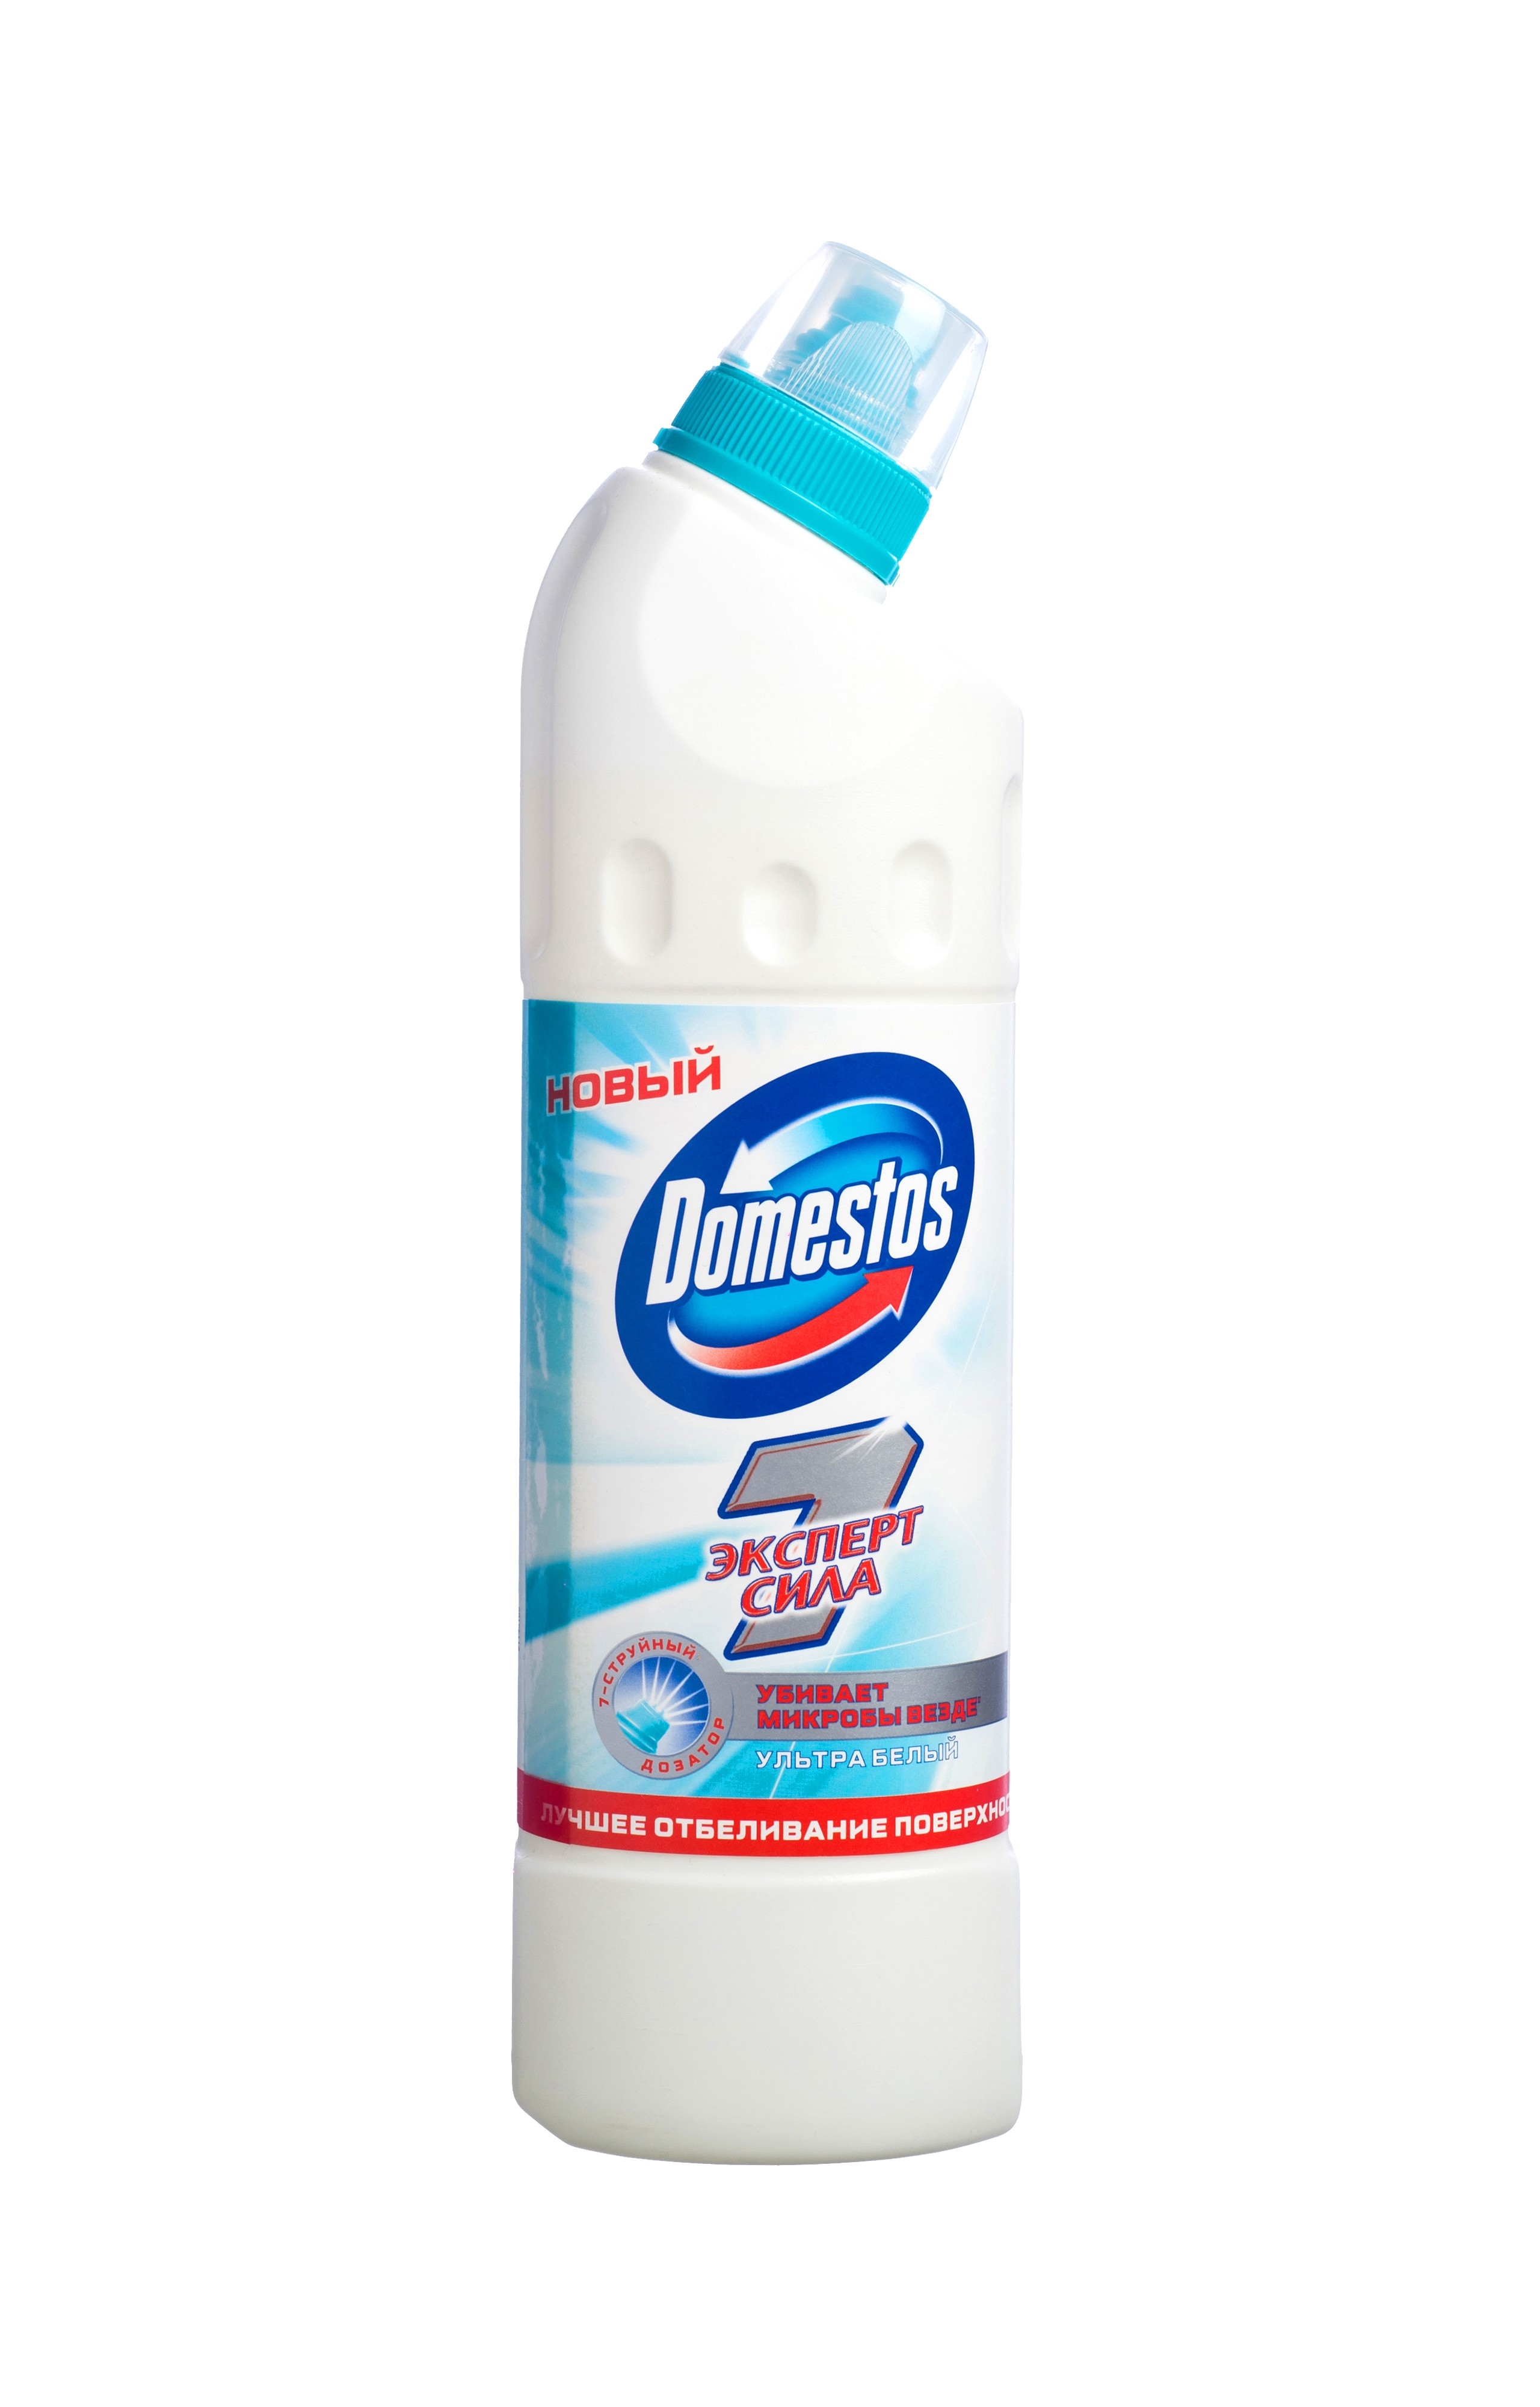 Domestos Чистящее средство для ванны и туалета Эксперт сила 7. Ультра белый, 500 мл 2017 fashion women pumps casual shoes pointed toe low heels mules double strap slip on slippers button leisure shoes